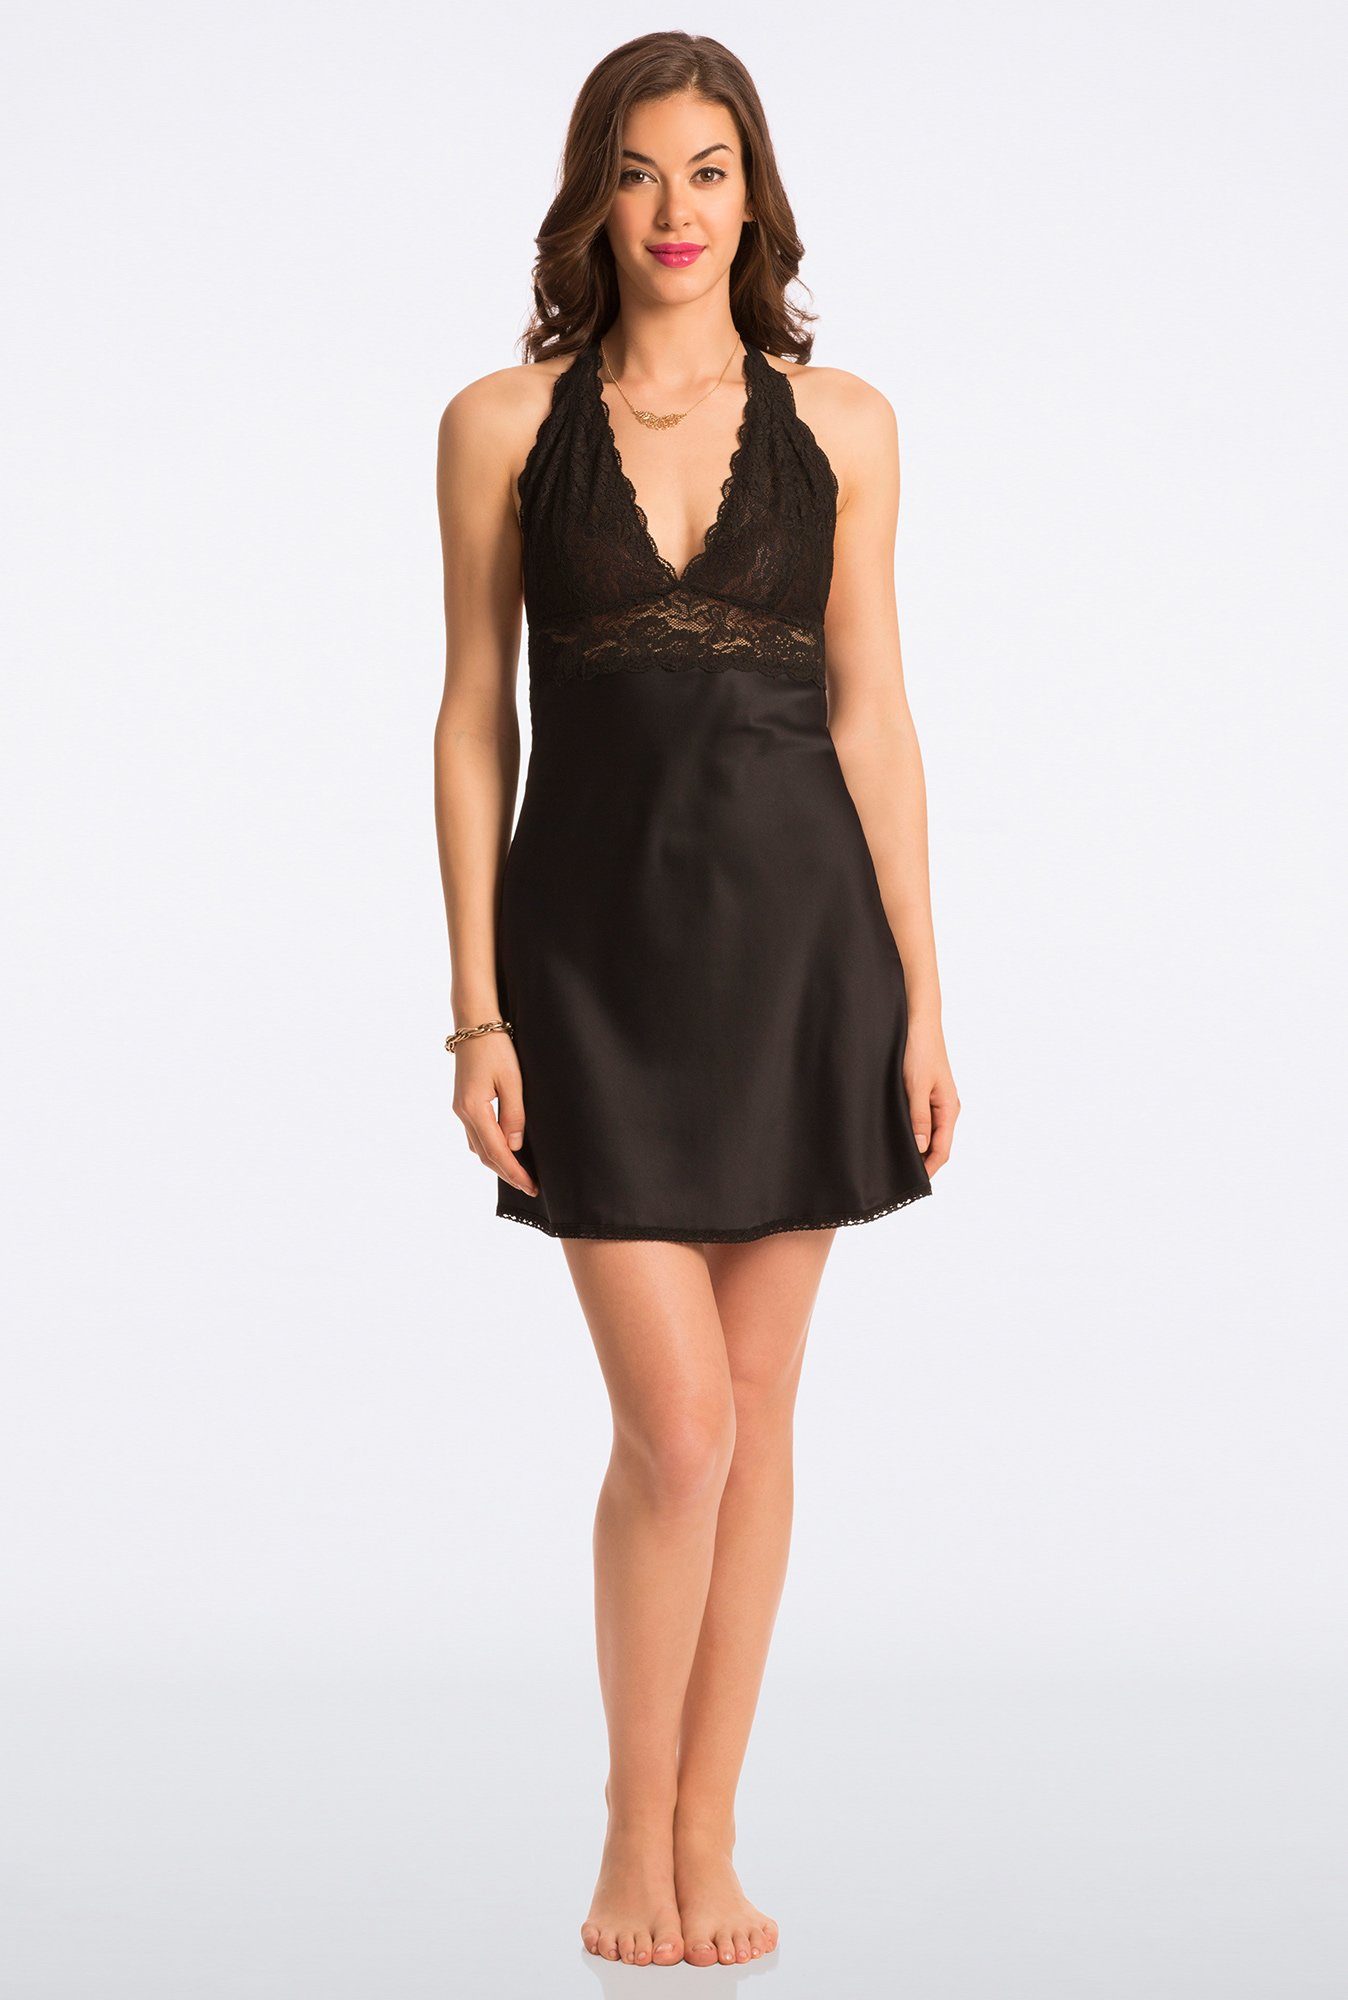 Pretty Secrets Black Lace Chemise